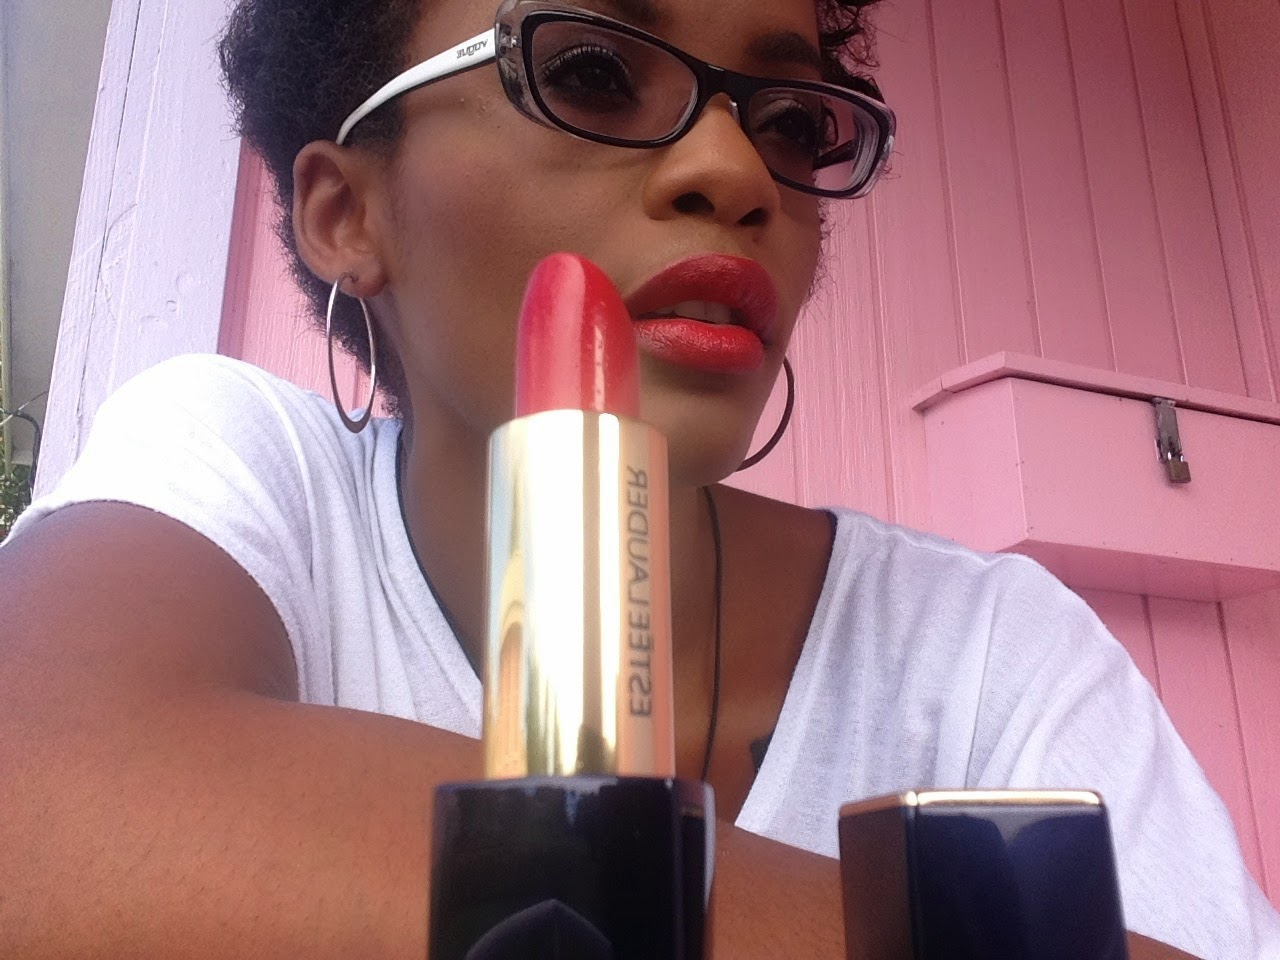 Estee Lauder Pure Color Envy Sculpting Lipstick 'Envious' swatch www.modenmakeup.com